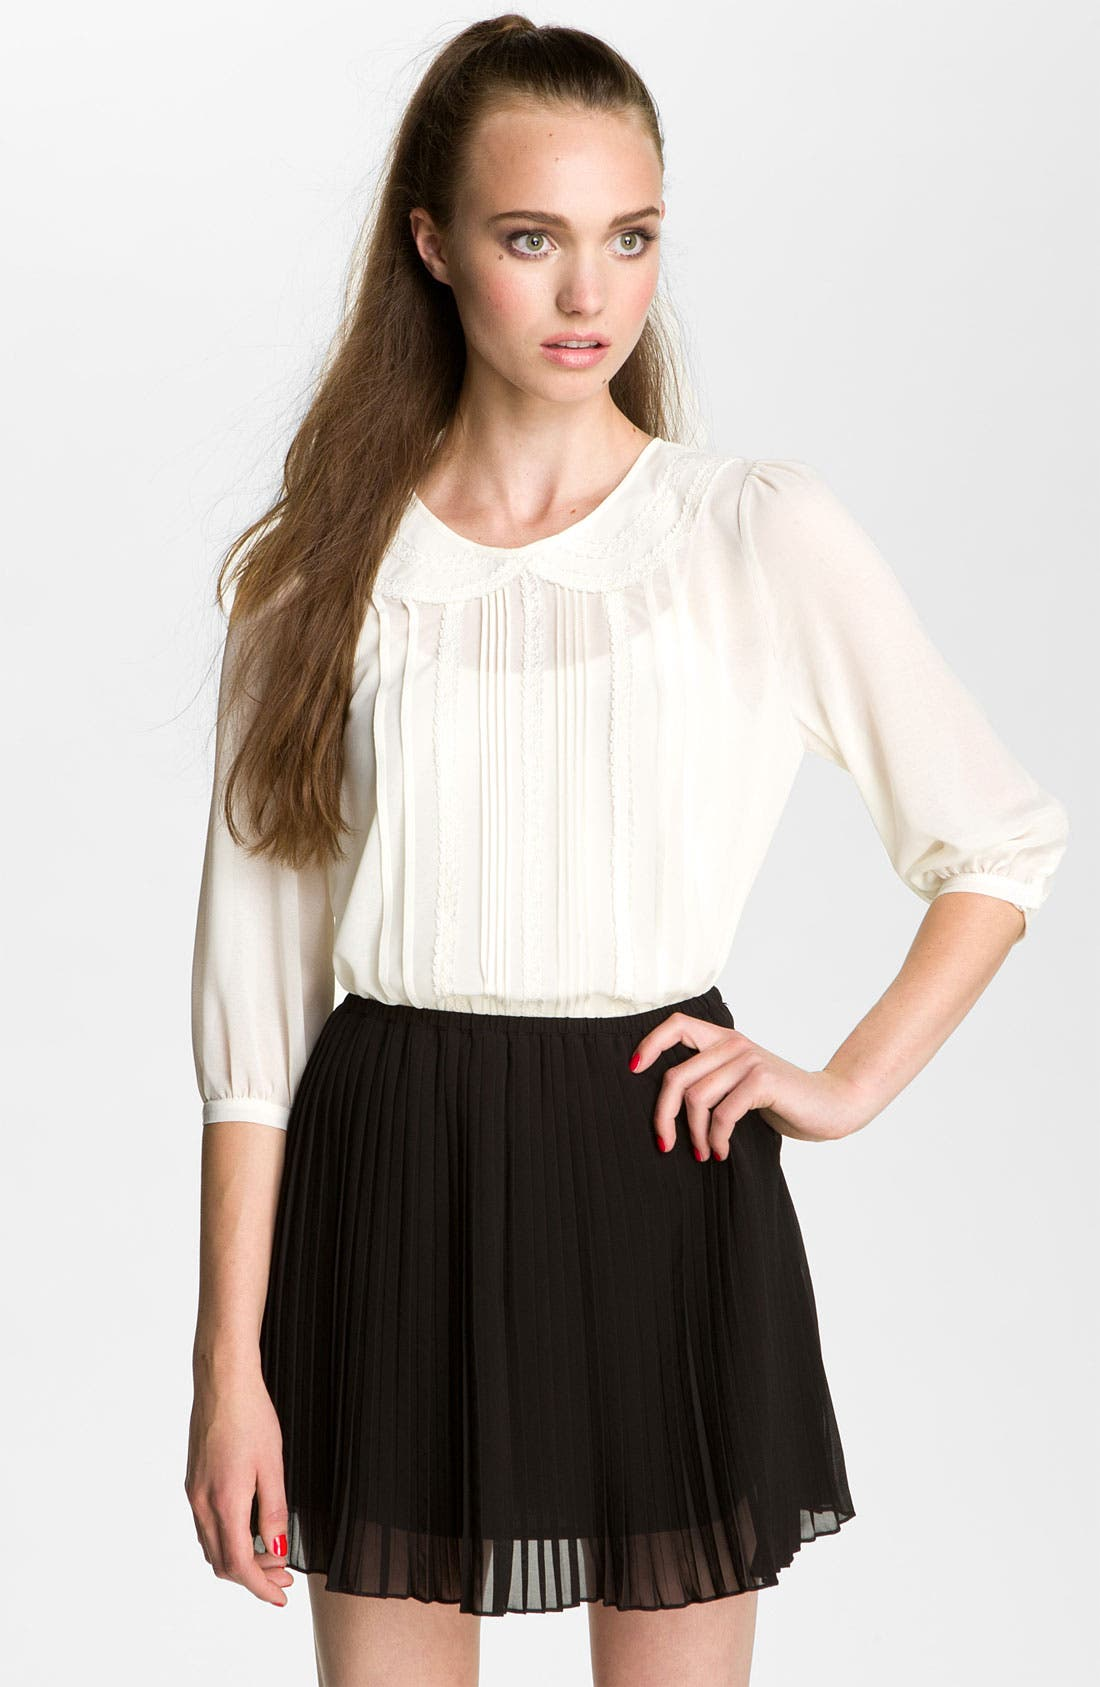 Alternate Image 1 Selected - Lush Pintuck & Lace Blouse (Juniors)